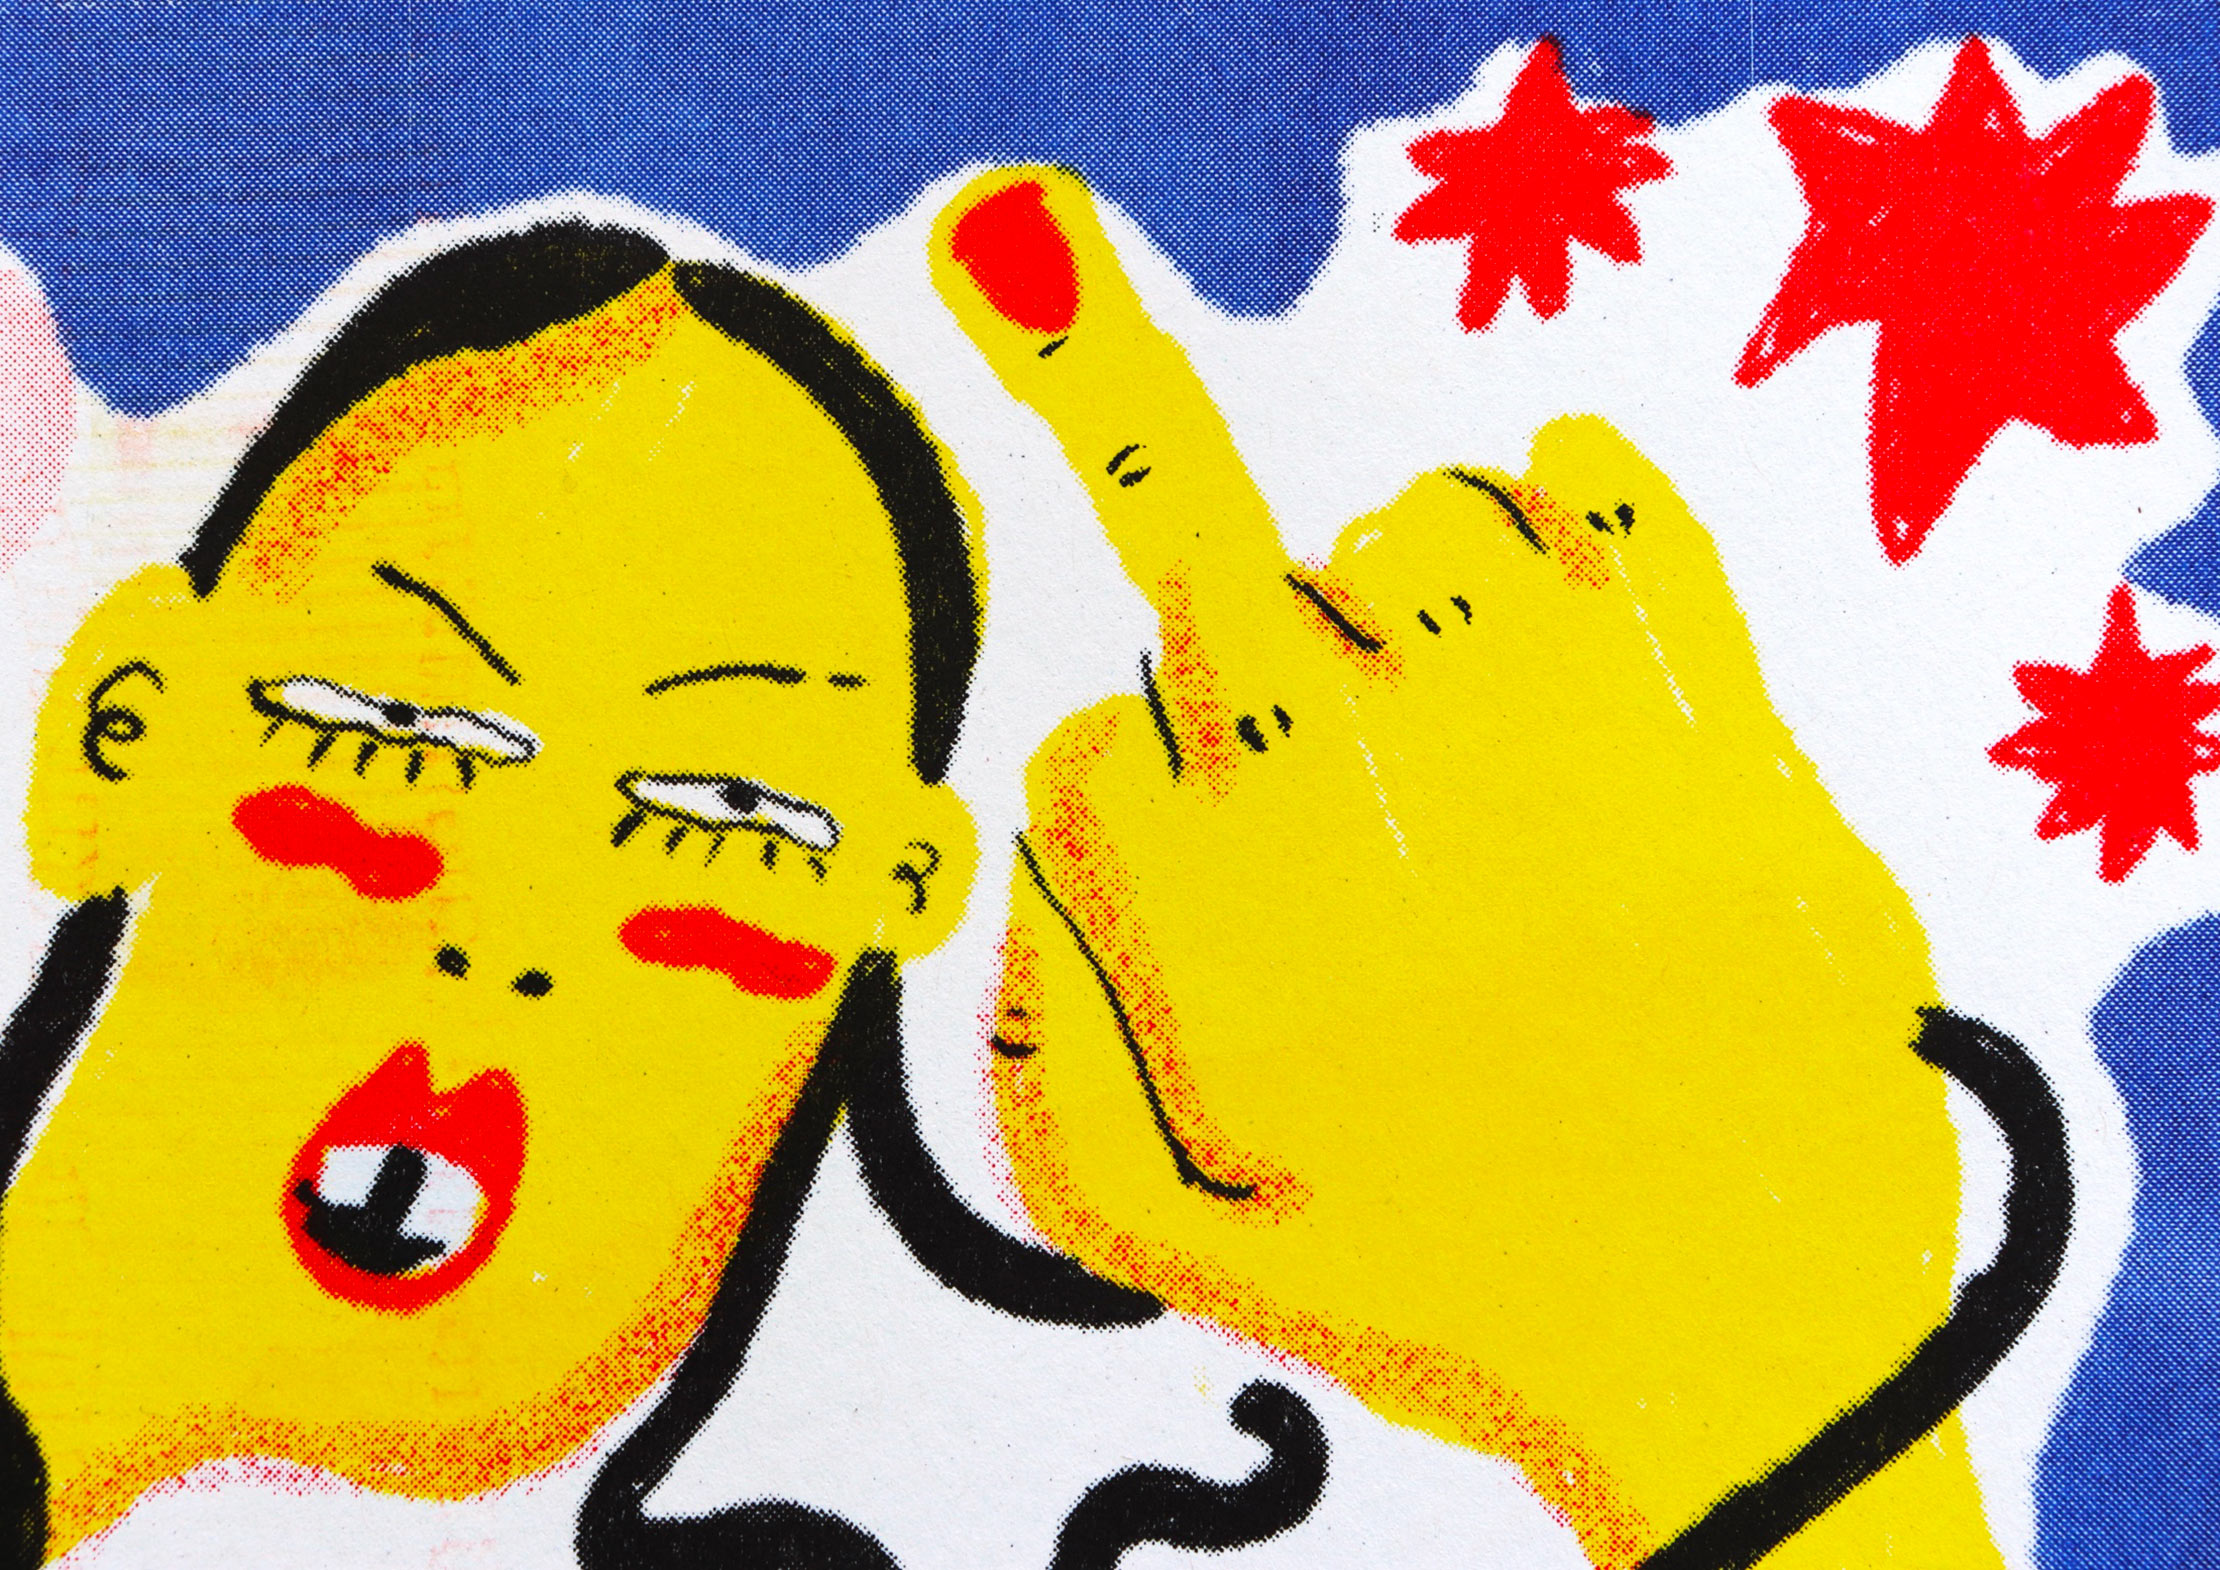 illustration of a punk giving the finger